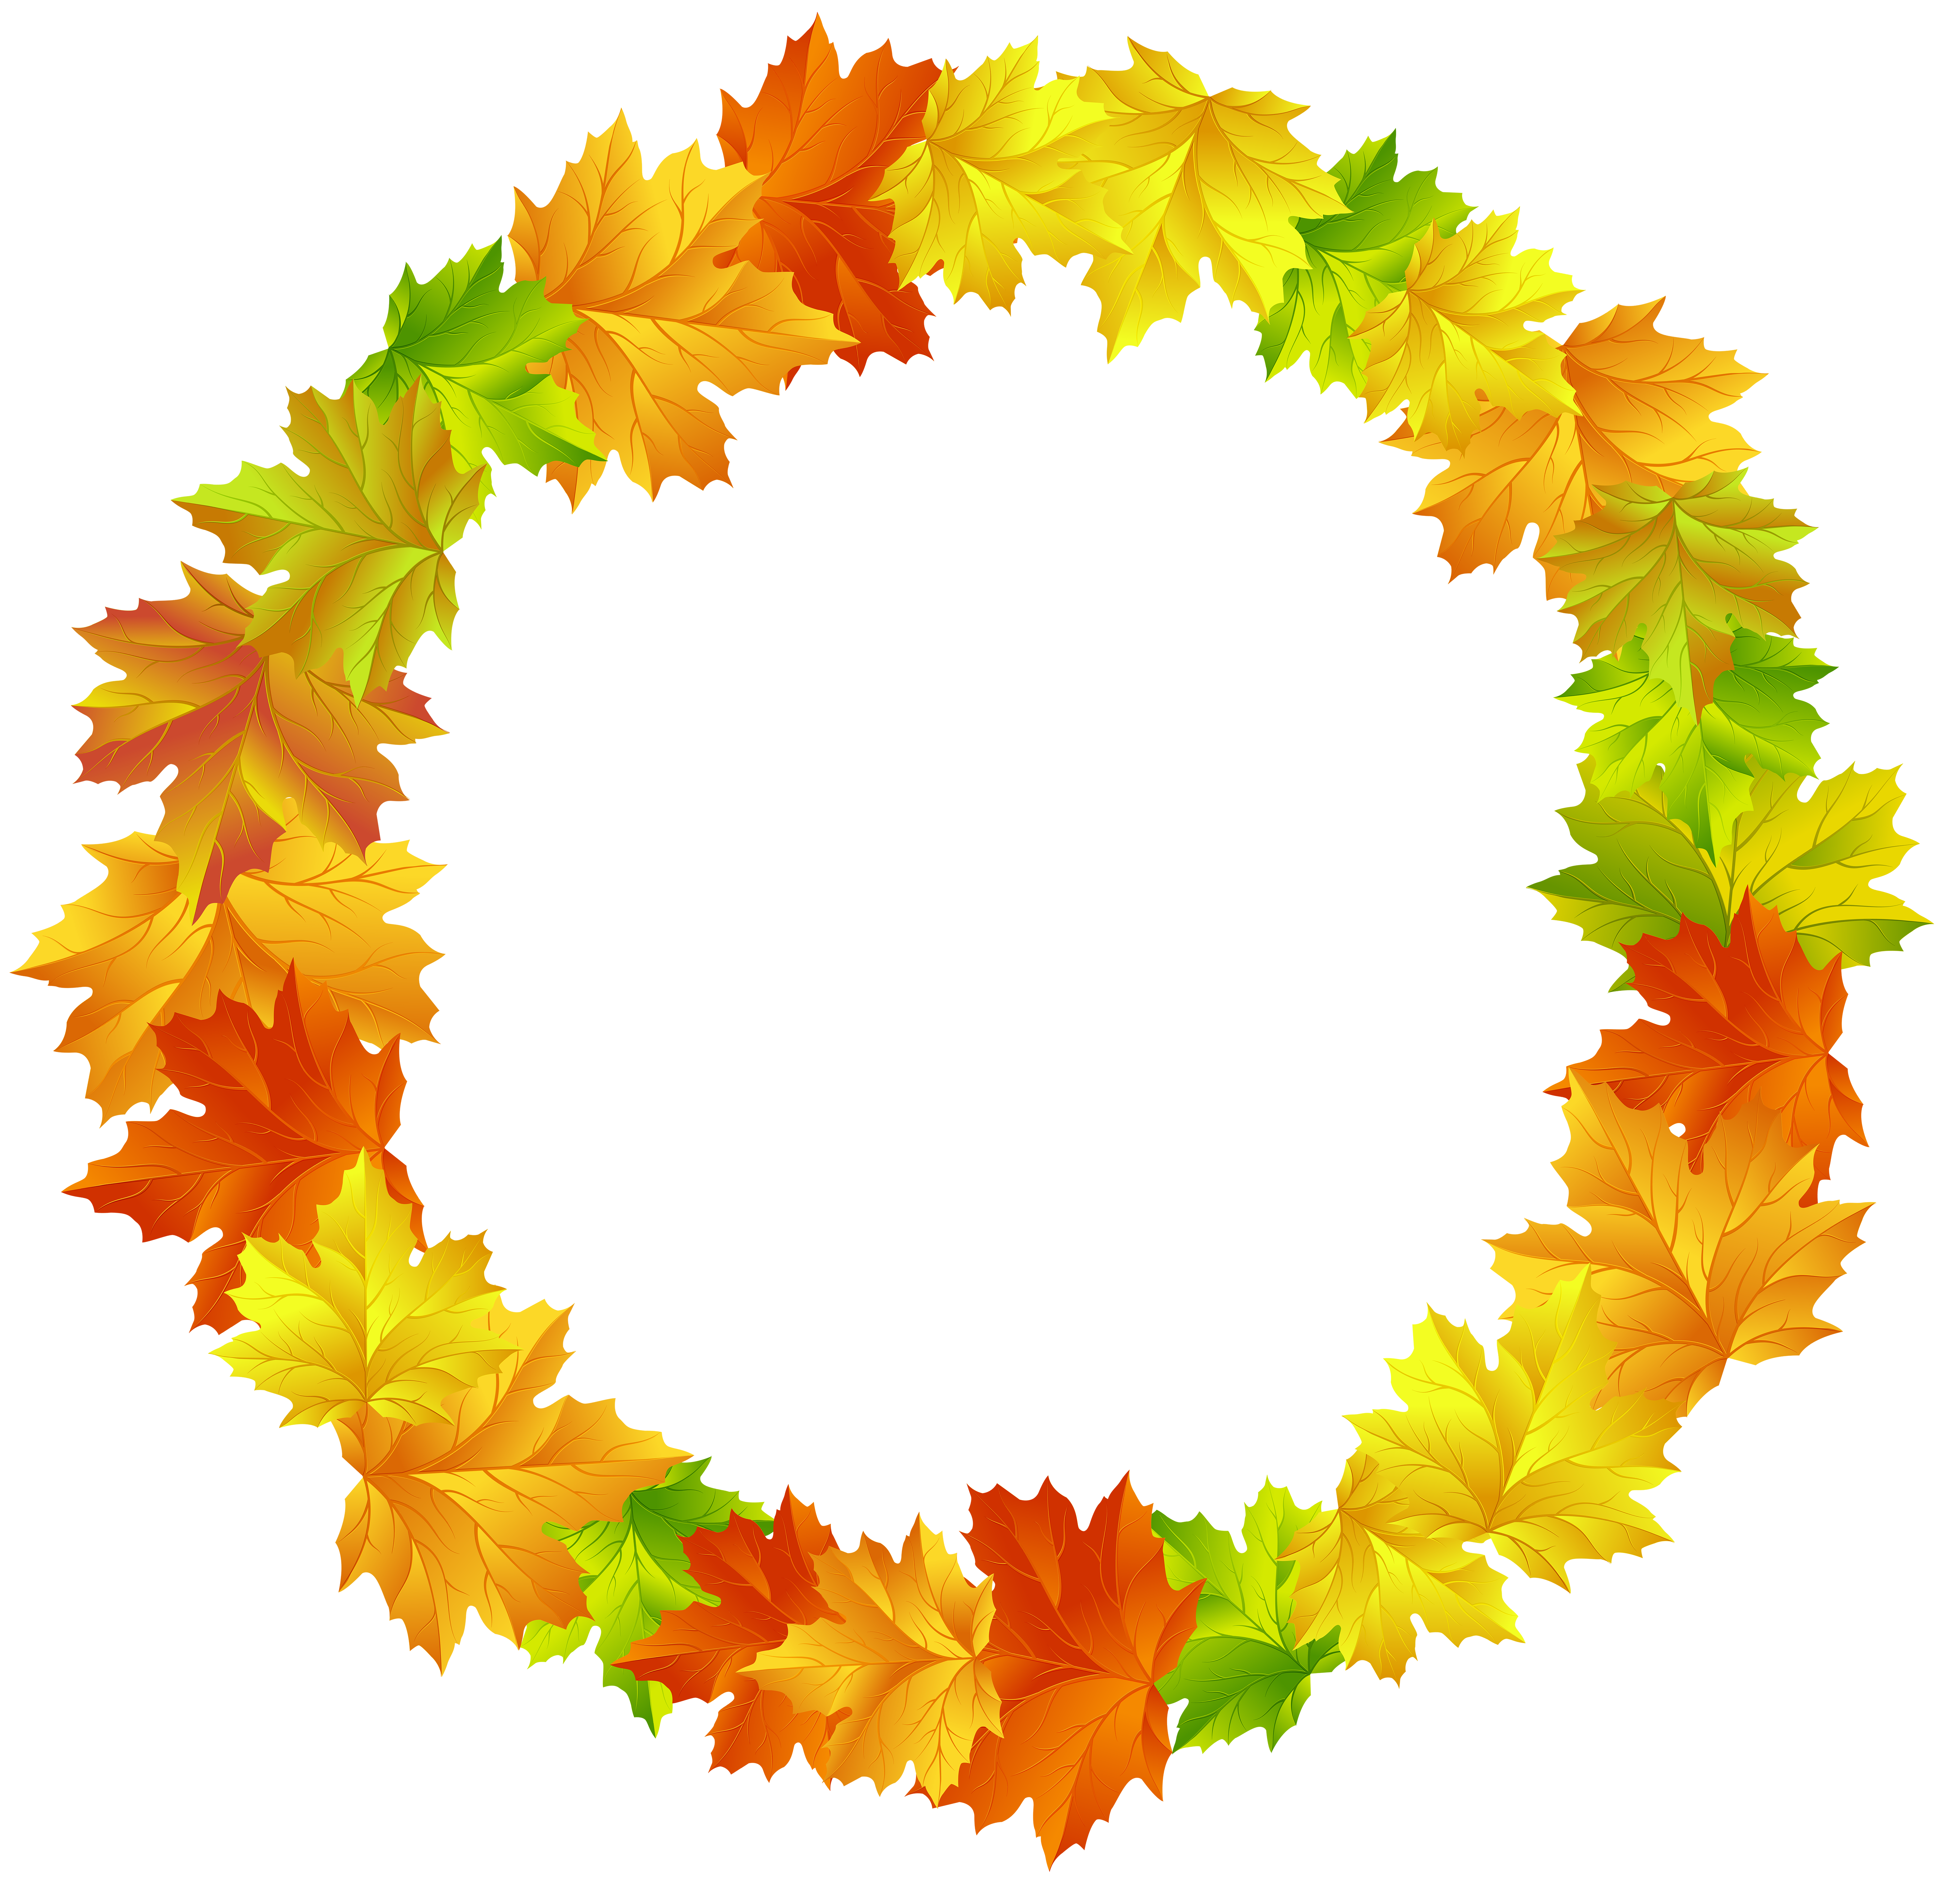 Fall round frame clip. Autumn leaves border png